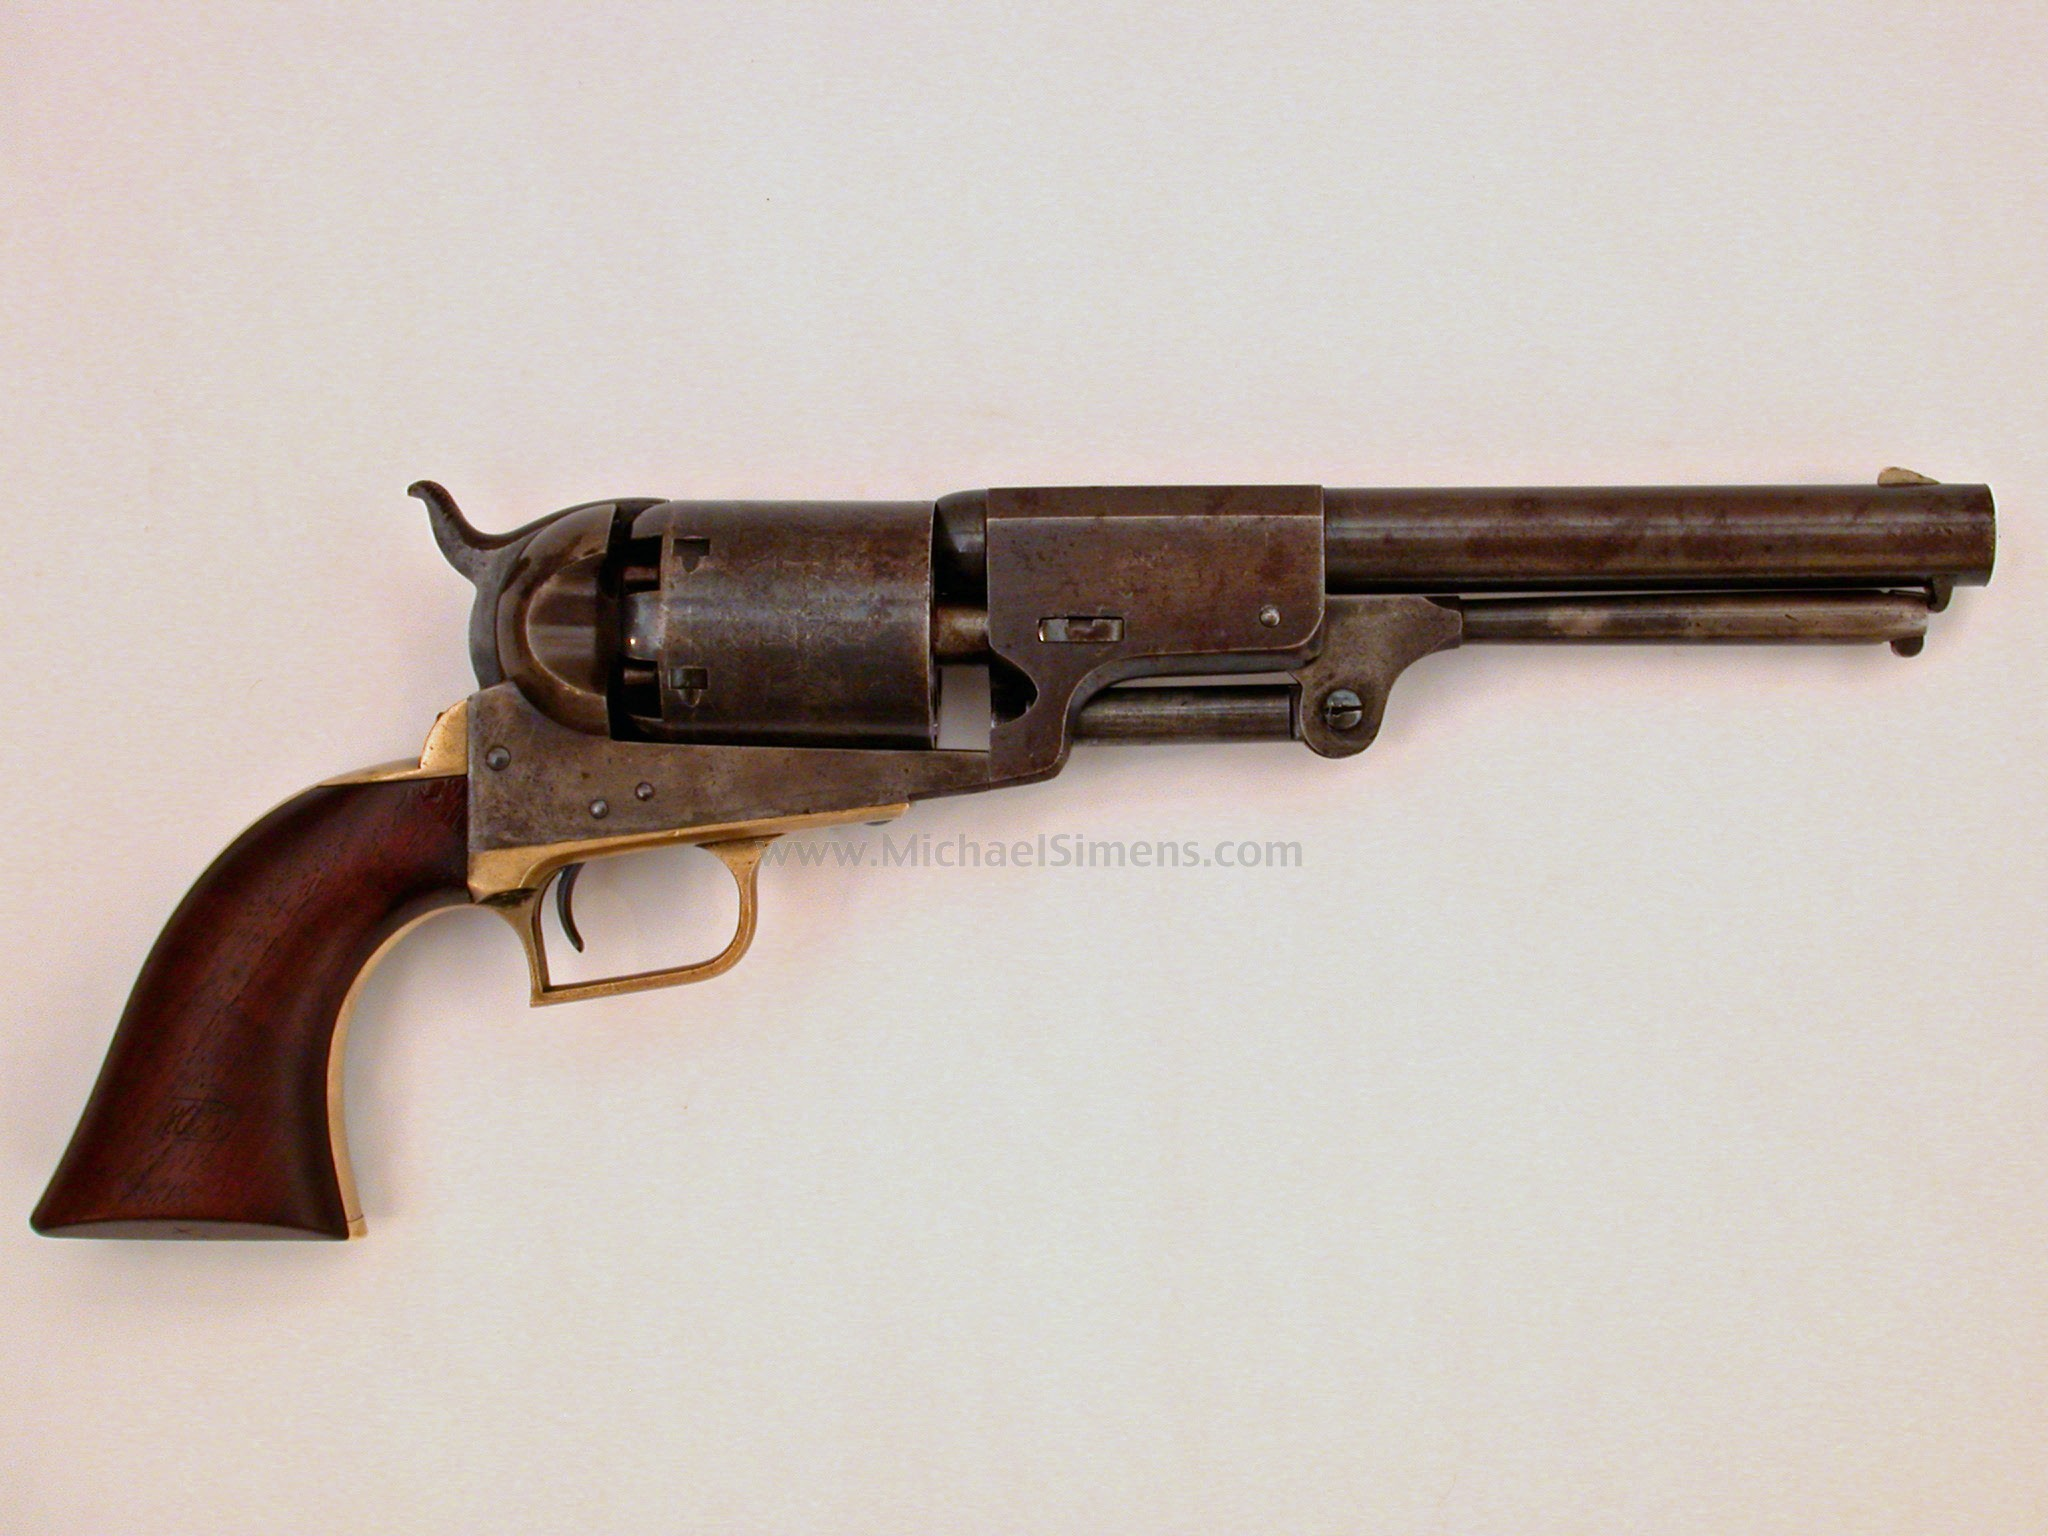 COLT 2ND MODEL DRAGOON WITH MASSACHUSETTS MARKINGS